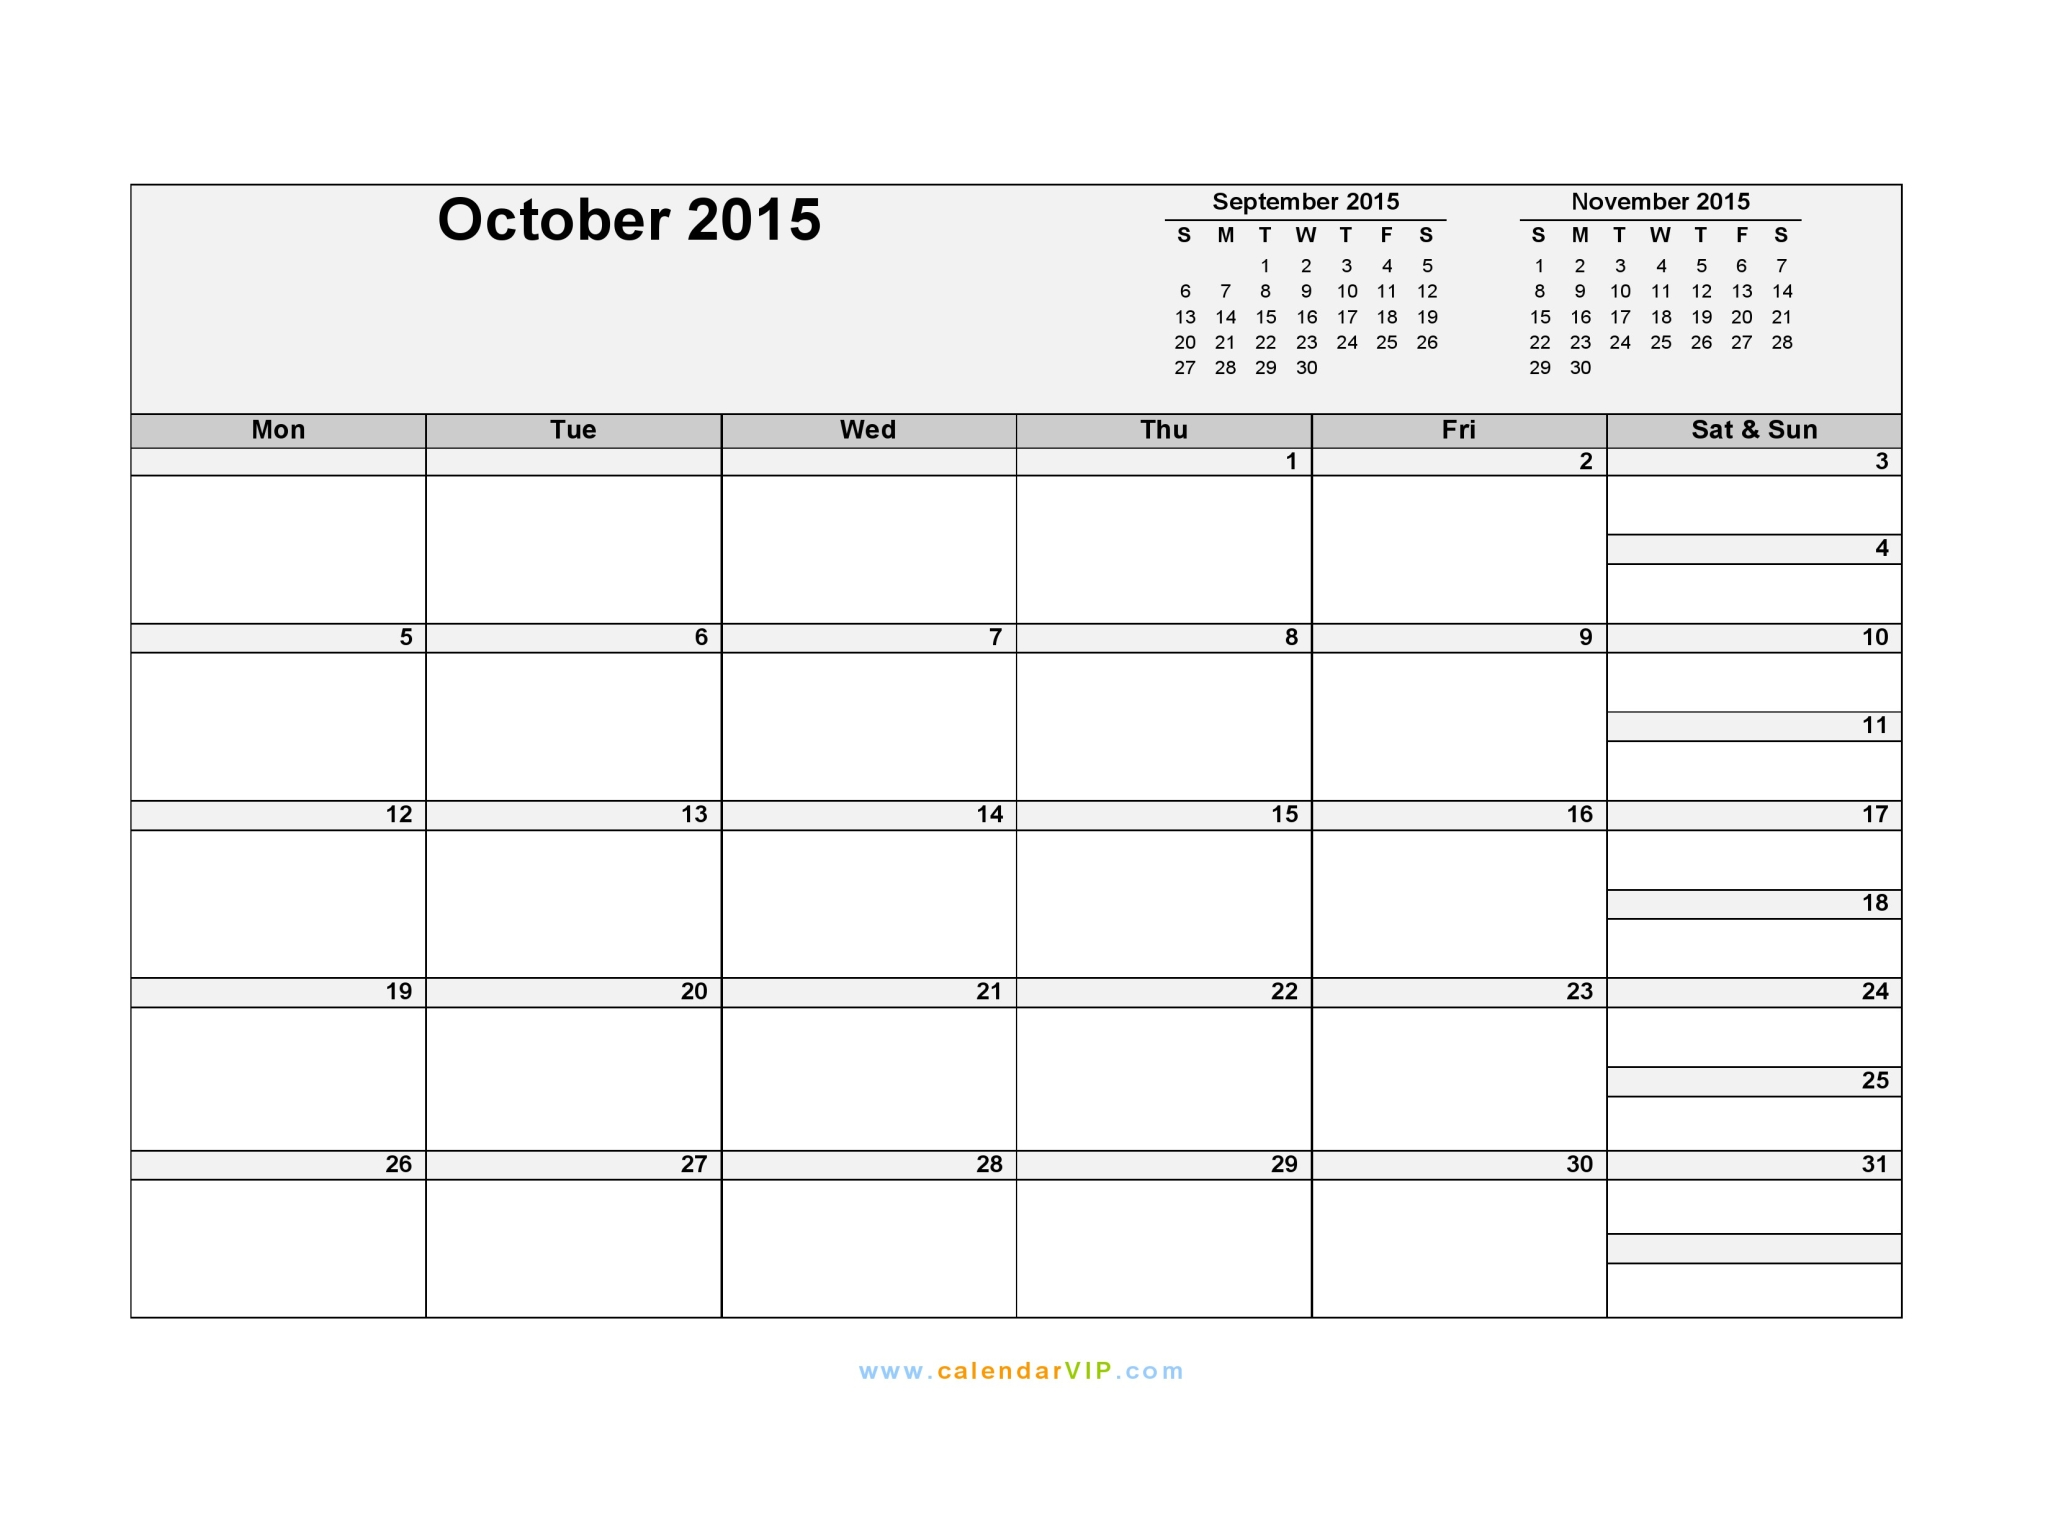 Excellent 1 Week Schedule Template Big 1 Year Experienced Java Resume Square 12 Team Schedule Template 1st Job Resume Objective Youthful 2.25 Button Template Gray2013 Resume Writing Trends October 2015 Calendar   Blank Printable Calendar Template In PDF ..